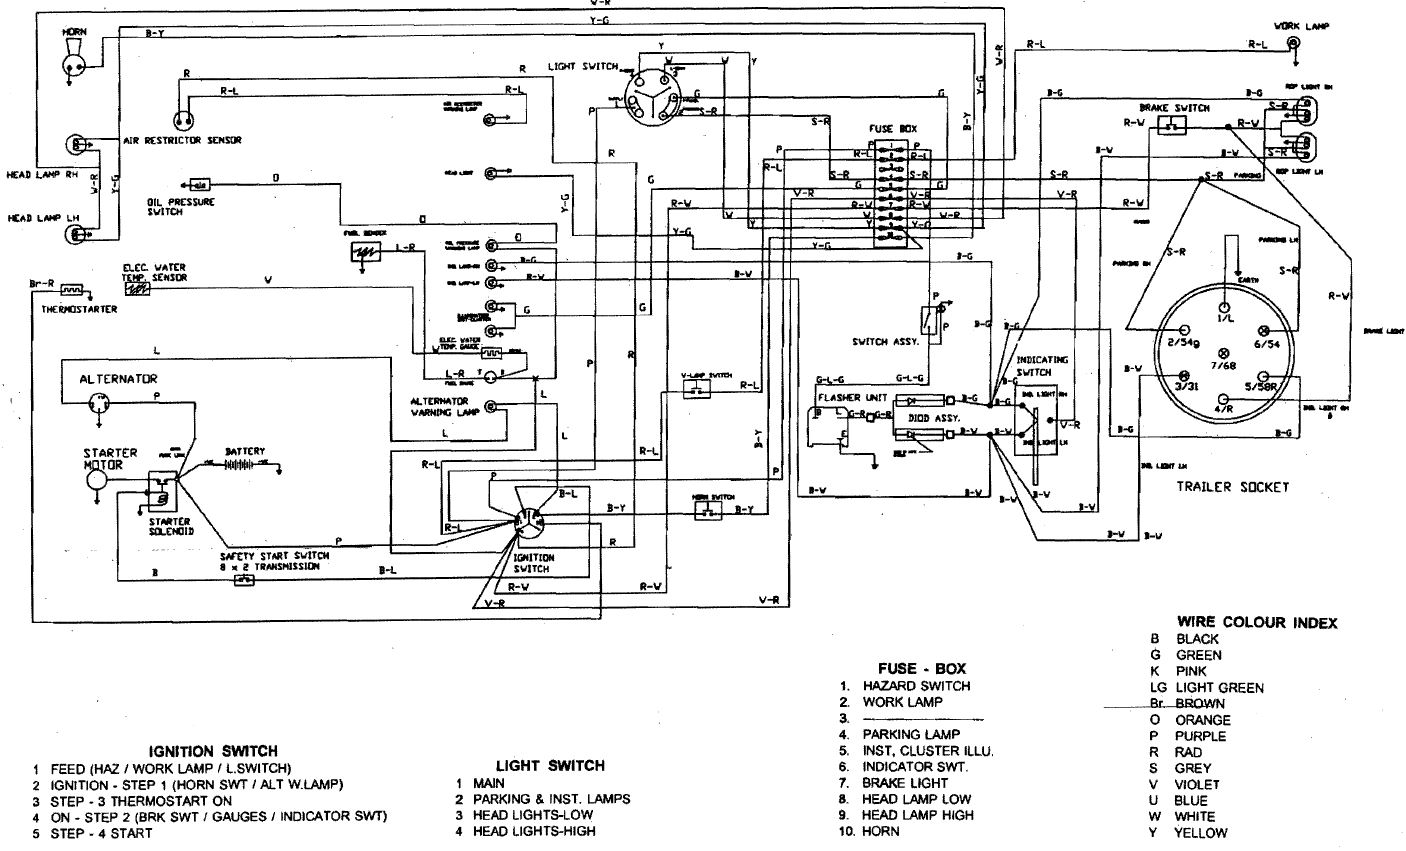 hight resolution of ignition switch wiring diagram generator